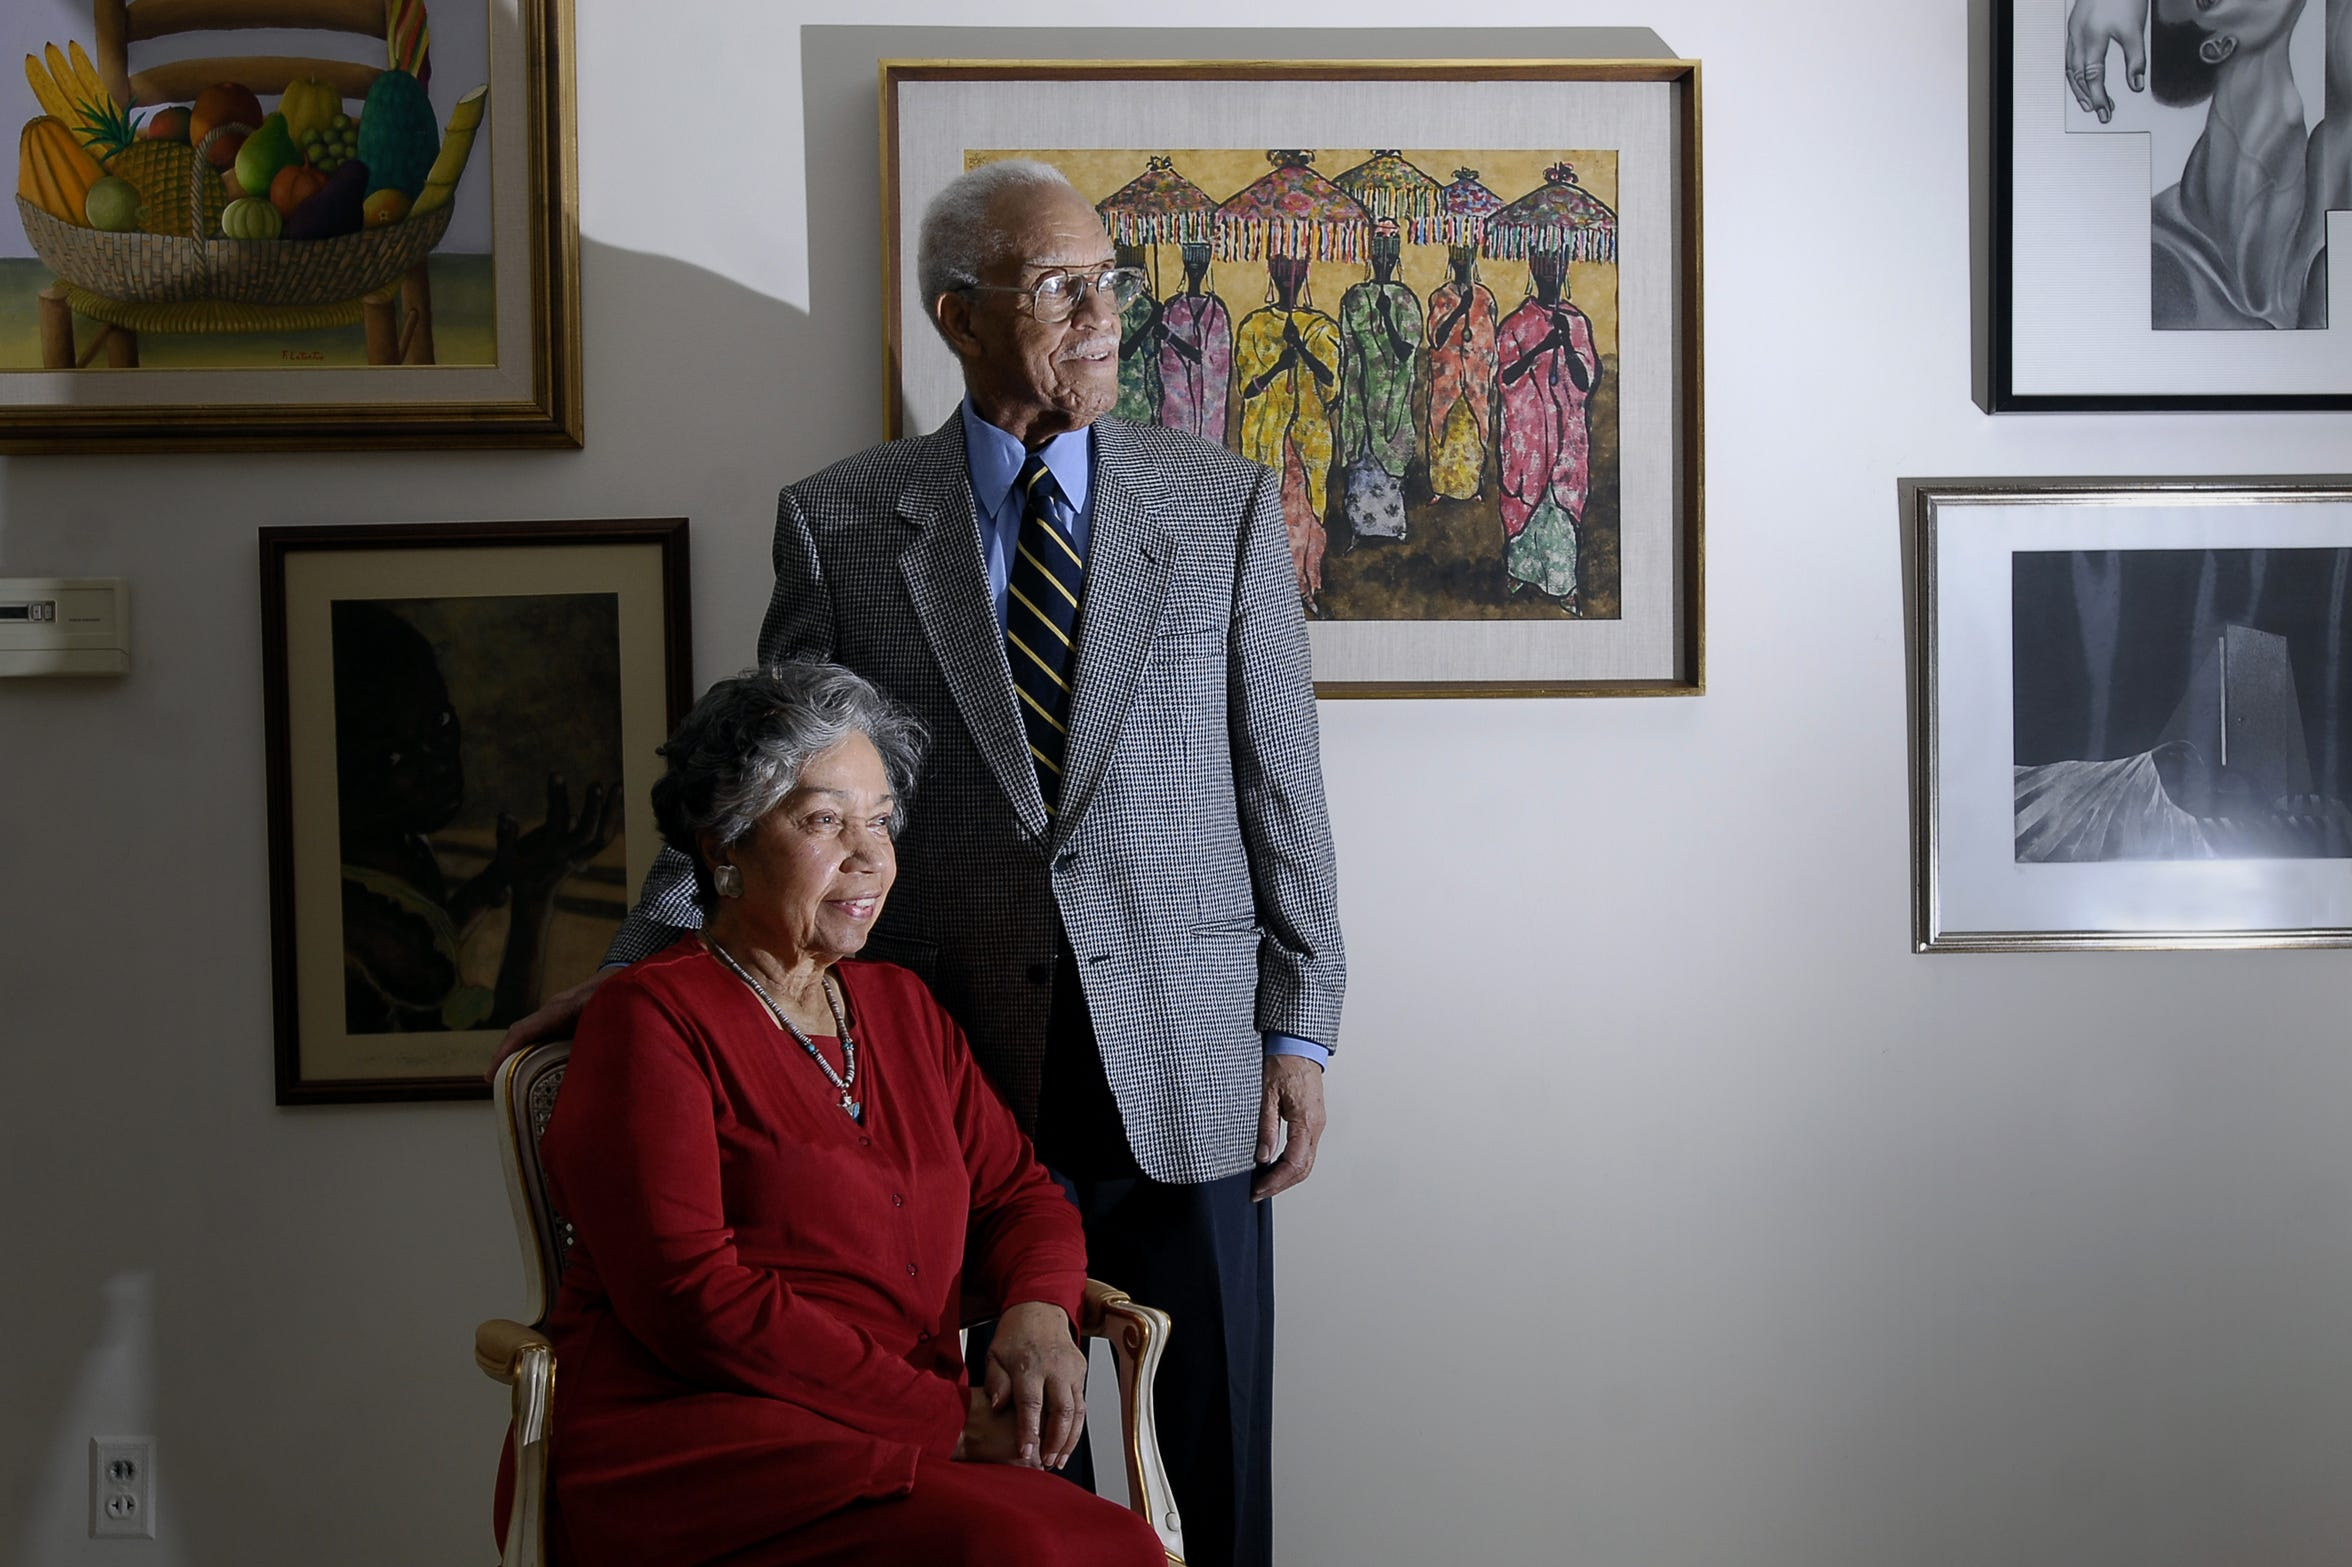 Hortense Canady, left, and her husband Clinton Canady Jr. in 2009 in the home they had lived in since 1957.  The Canadys used to live at 832 West Main Street, now in the route of I-496.